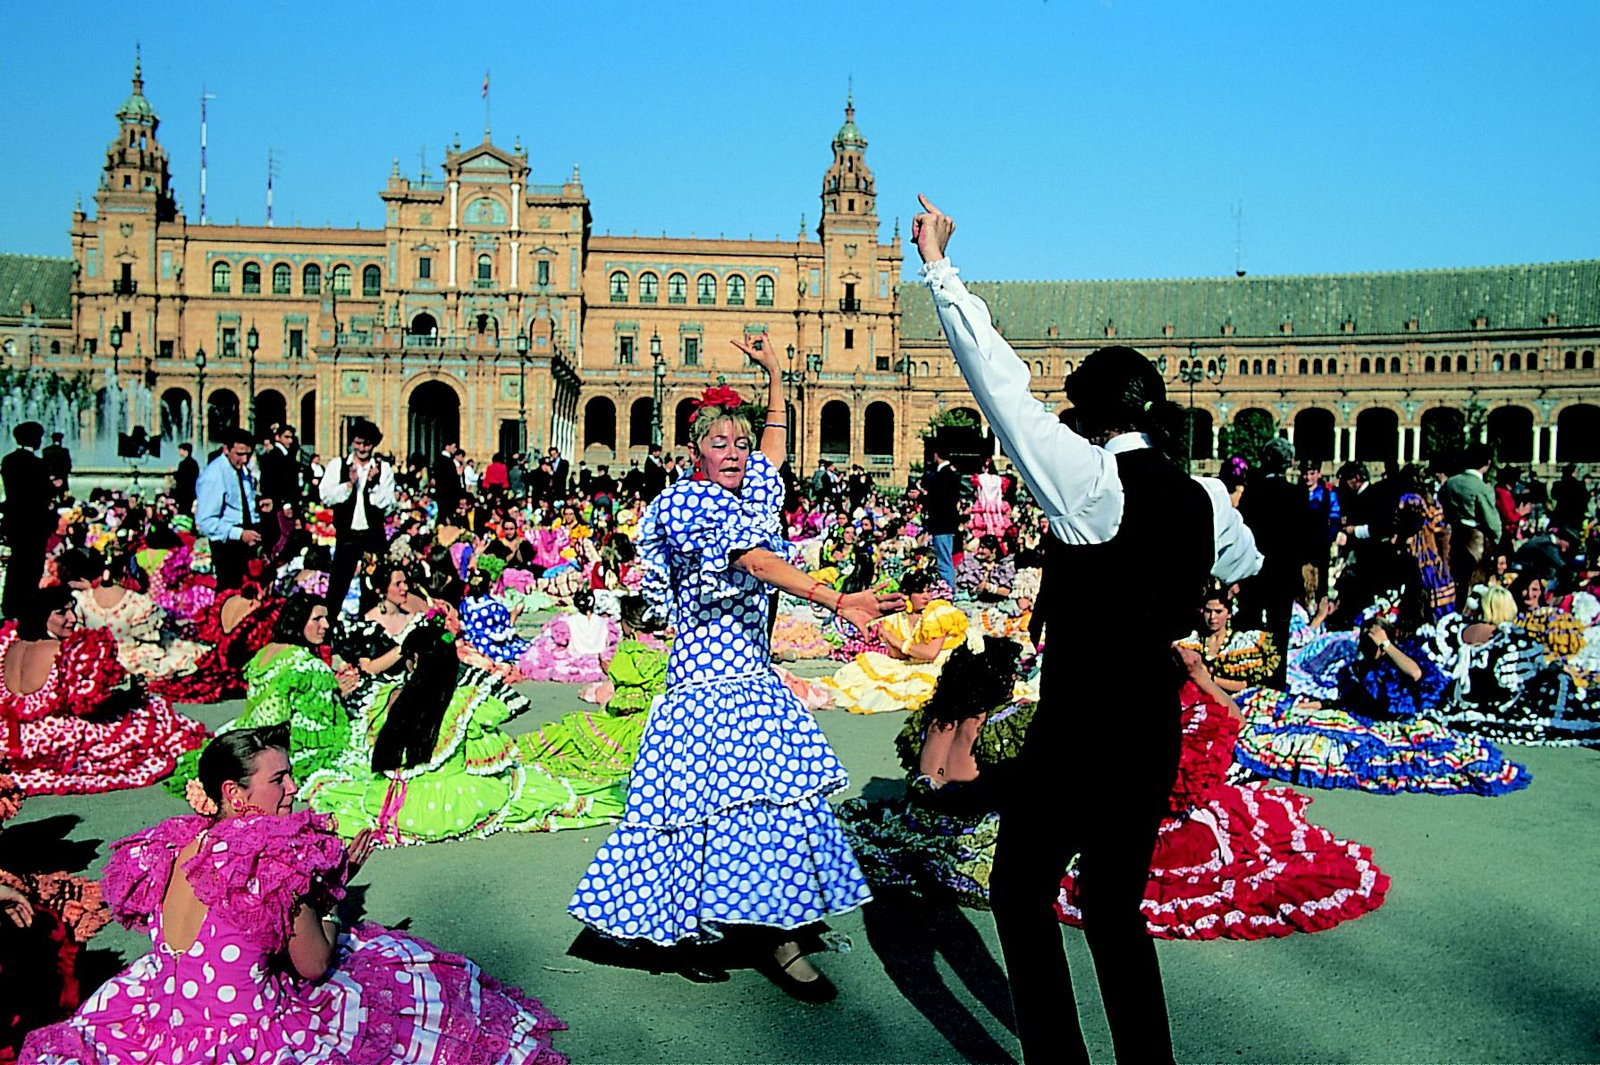 Johnsunseaandskytravel seville spain travel guide for Espectaculo flamenco seville sevilla